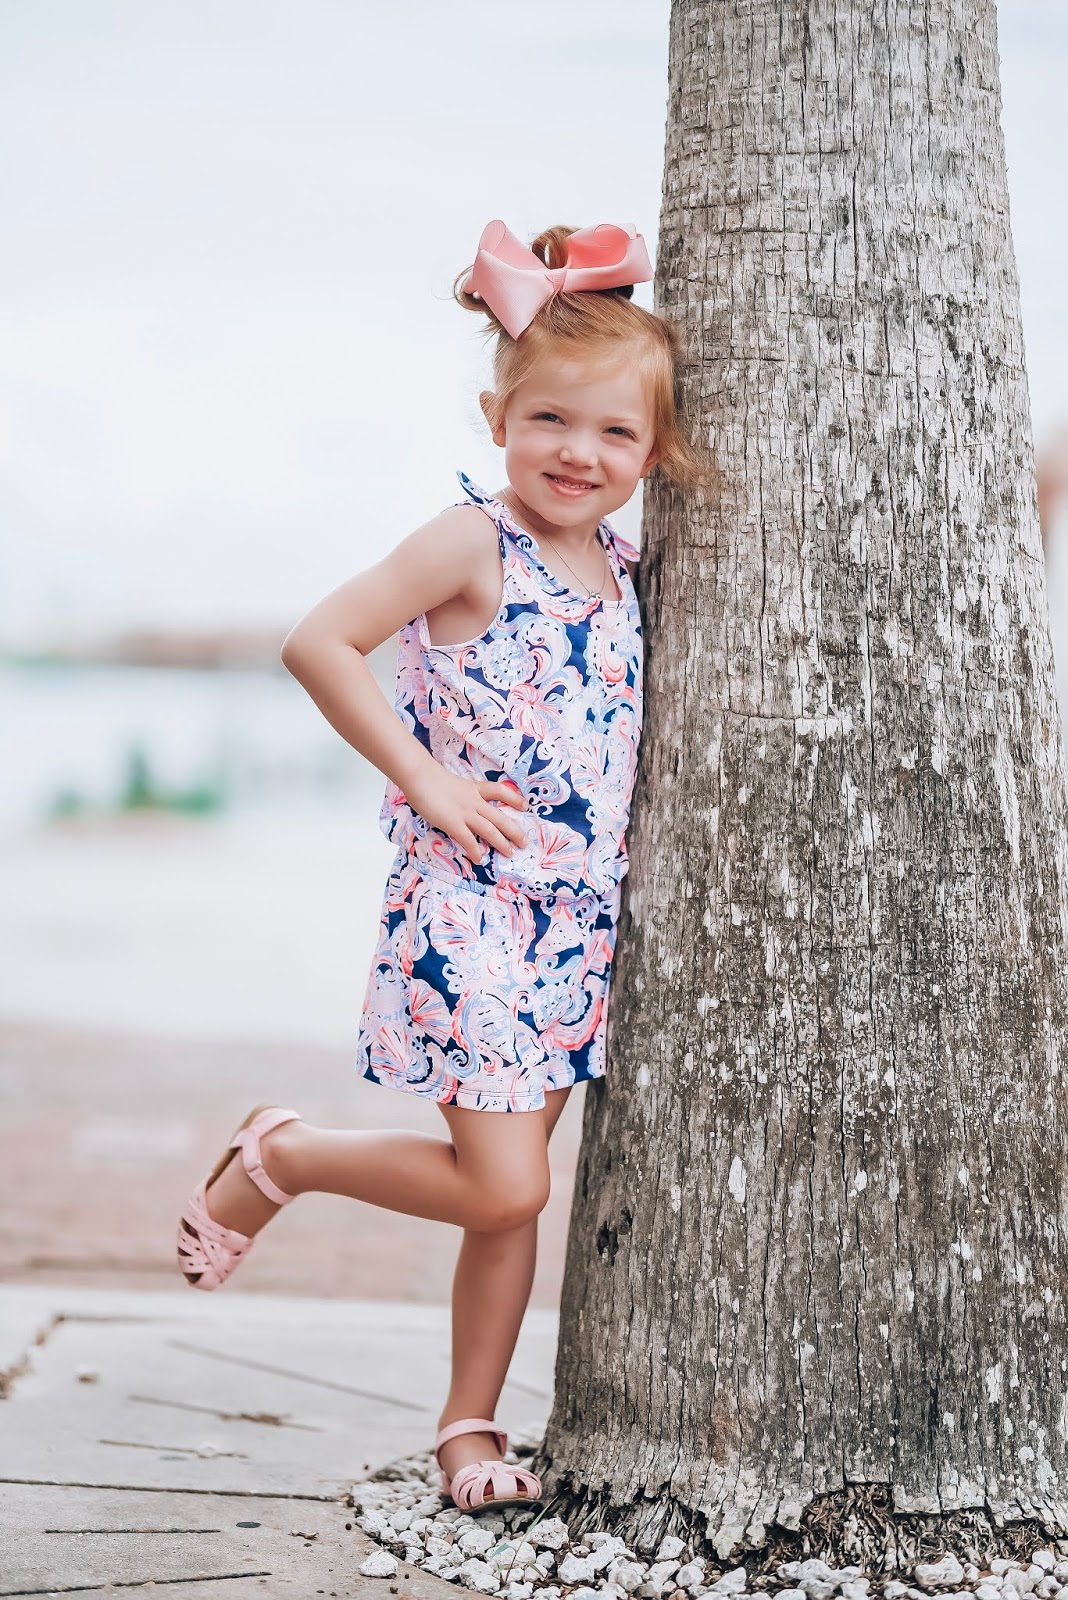 Happy First Day of Summer & National Wear Your Lilly Day: Mommy and me Lilly Rompers in High Tide Navy Its For Shore - Something Delightful Blog